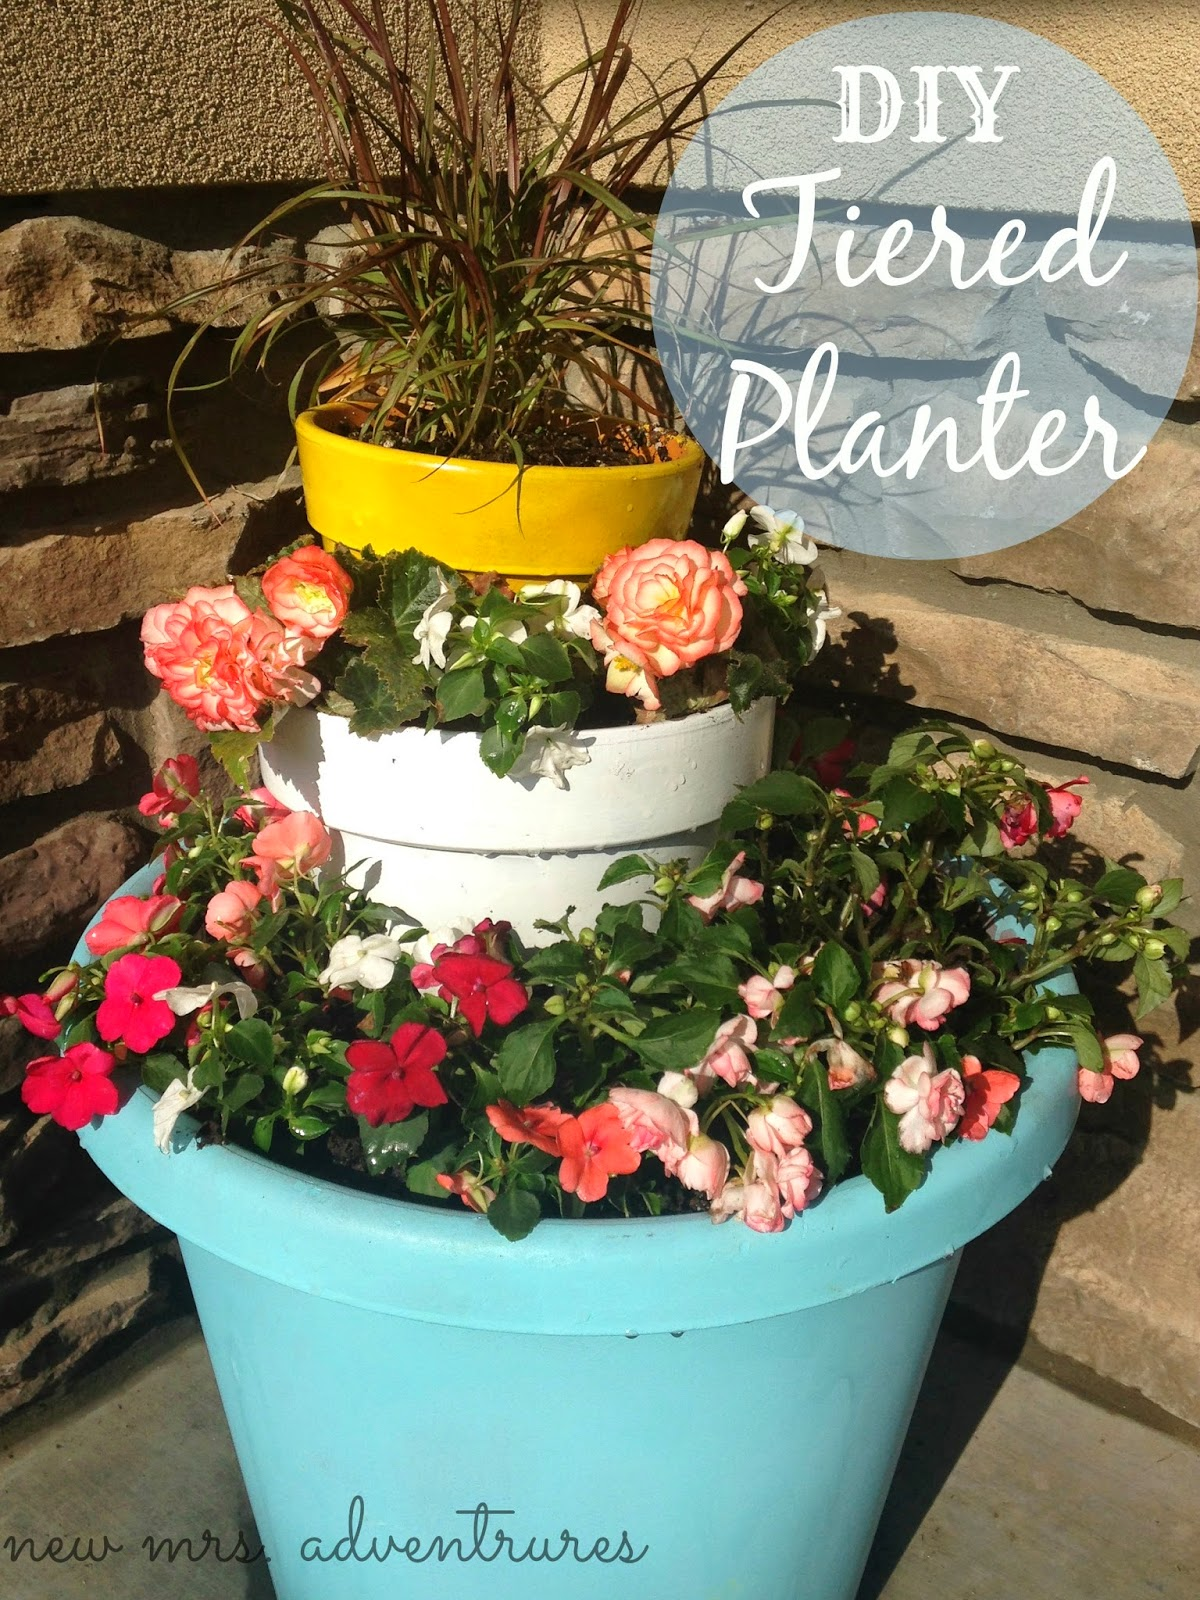 Spring DIY Tiered Planter